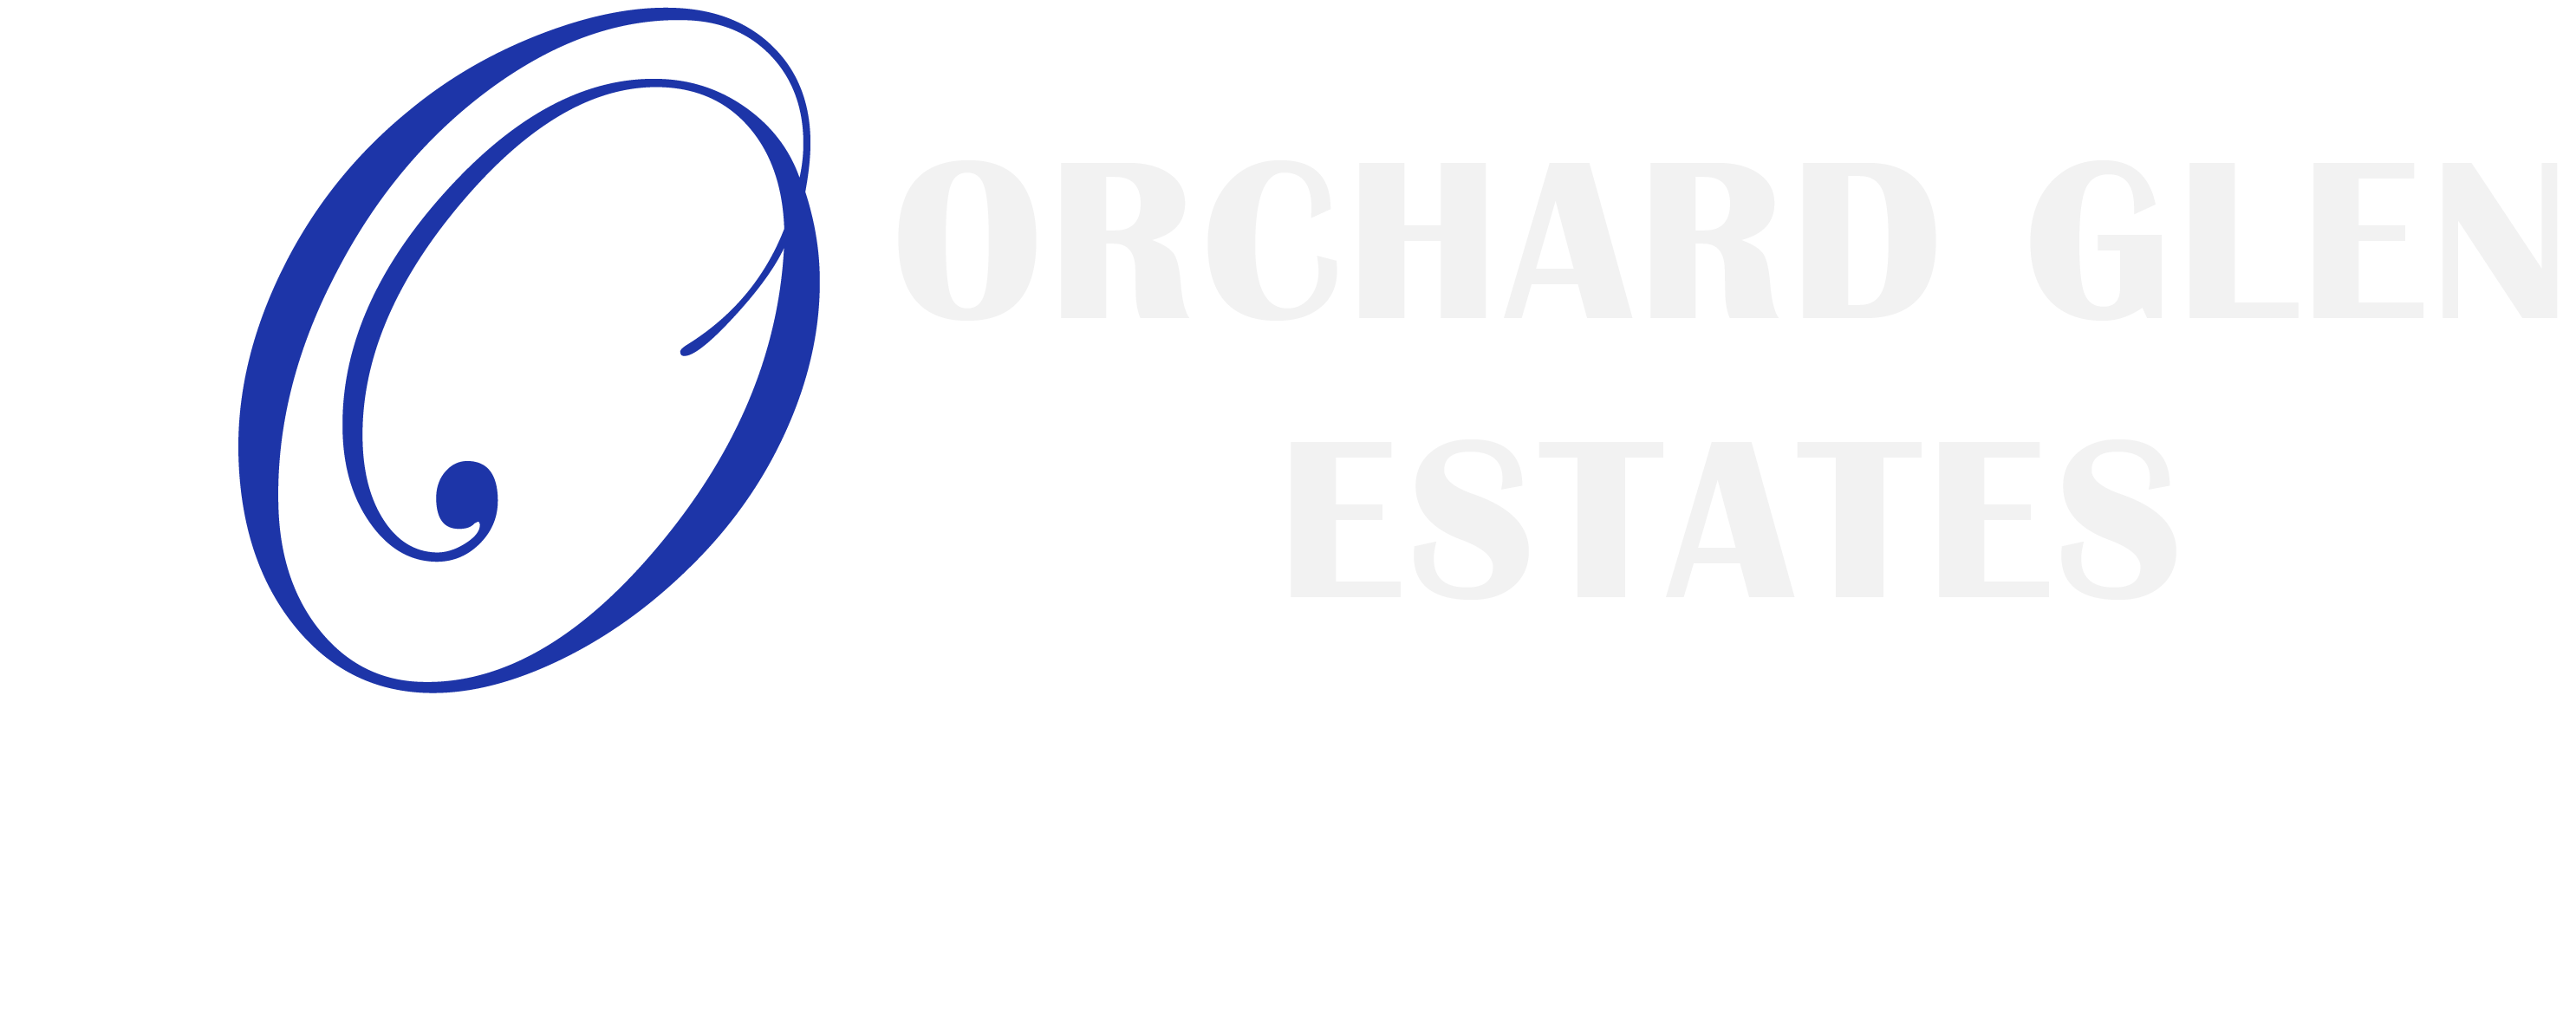 Orchard Glen Estates